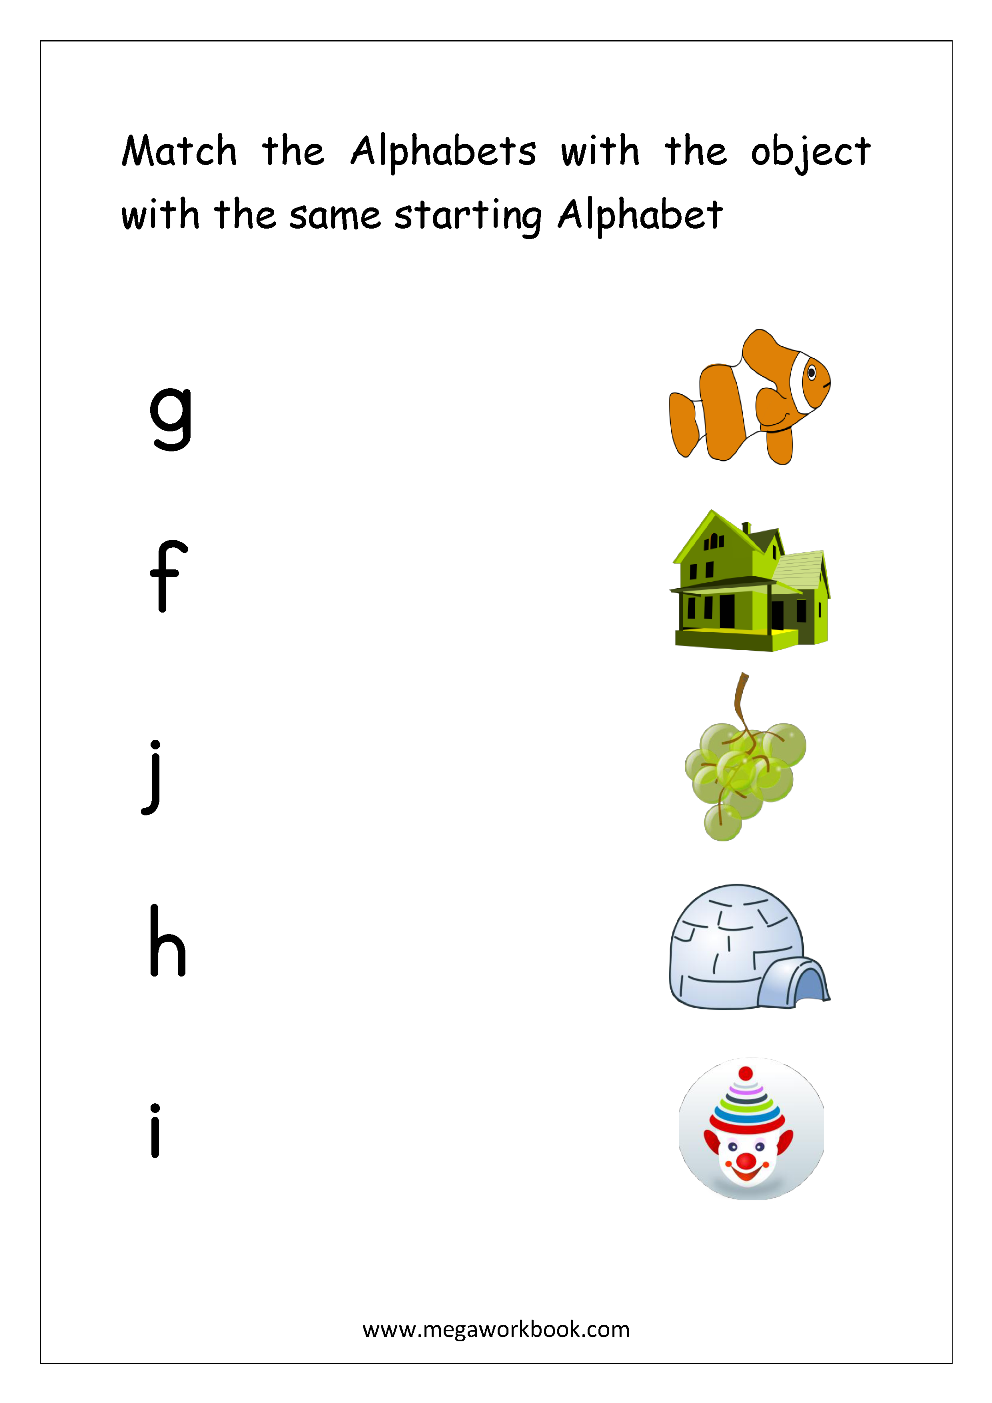 Worksheets Letter Matching Worksheets alphabet matching worksheets match object with the starting small letters